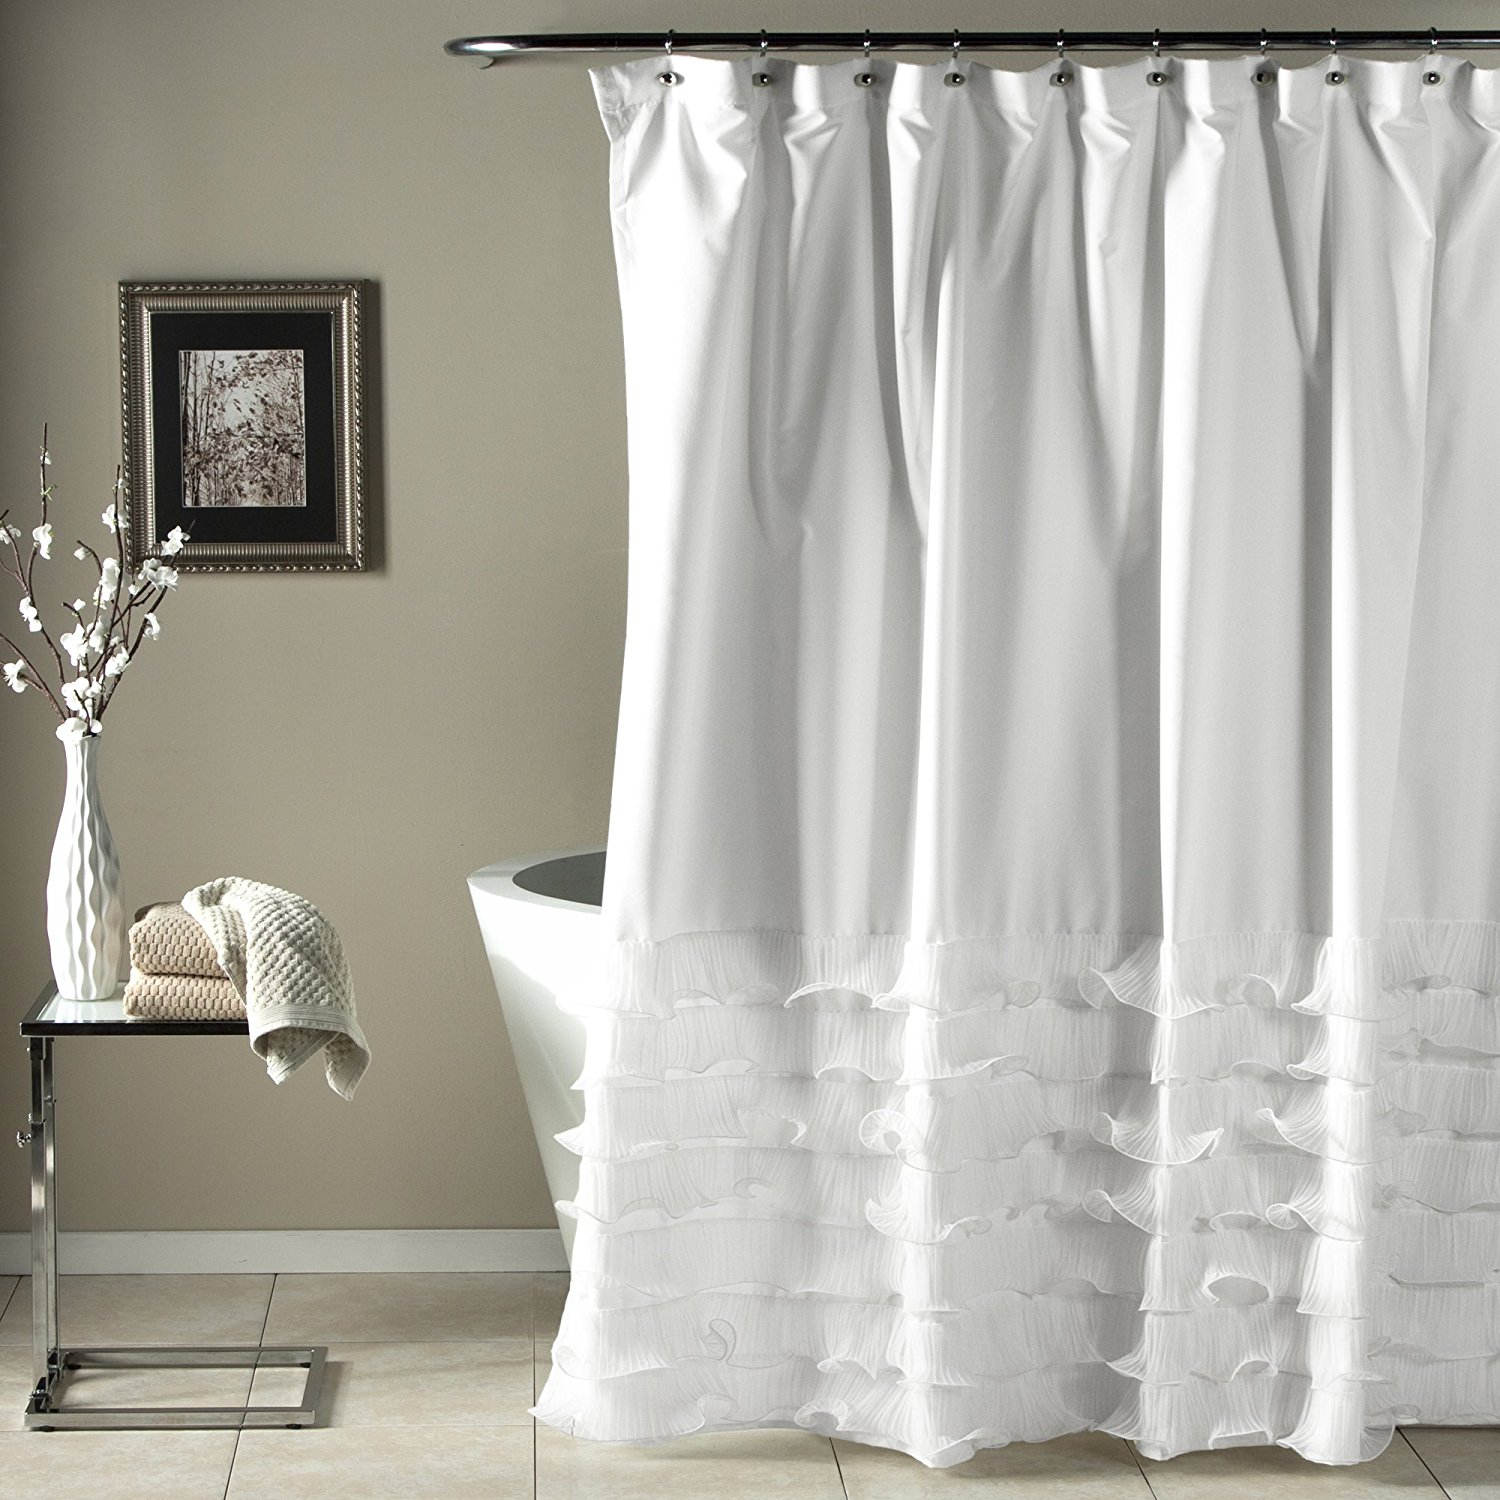 Avery Shower Curtain 72 72 Inch White Curtains Set 7piece intended for dimensions 1500 X 1500